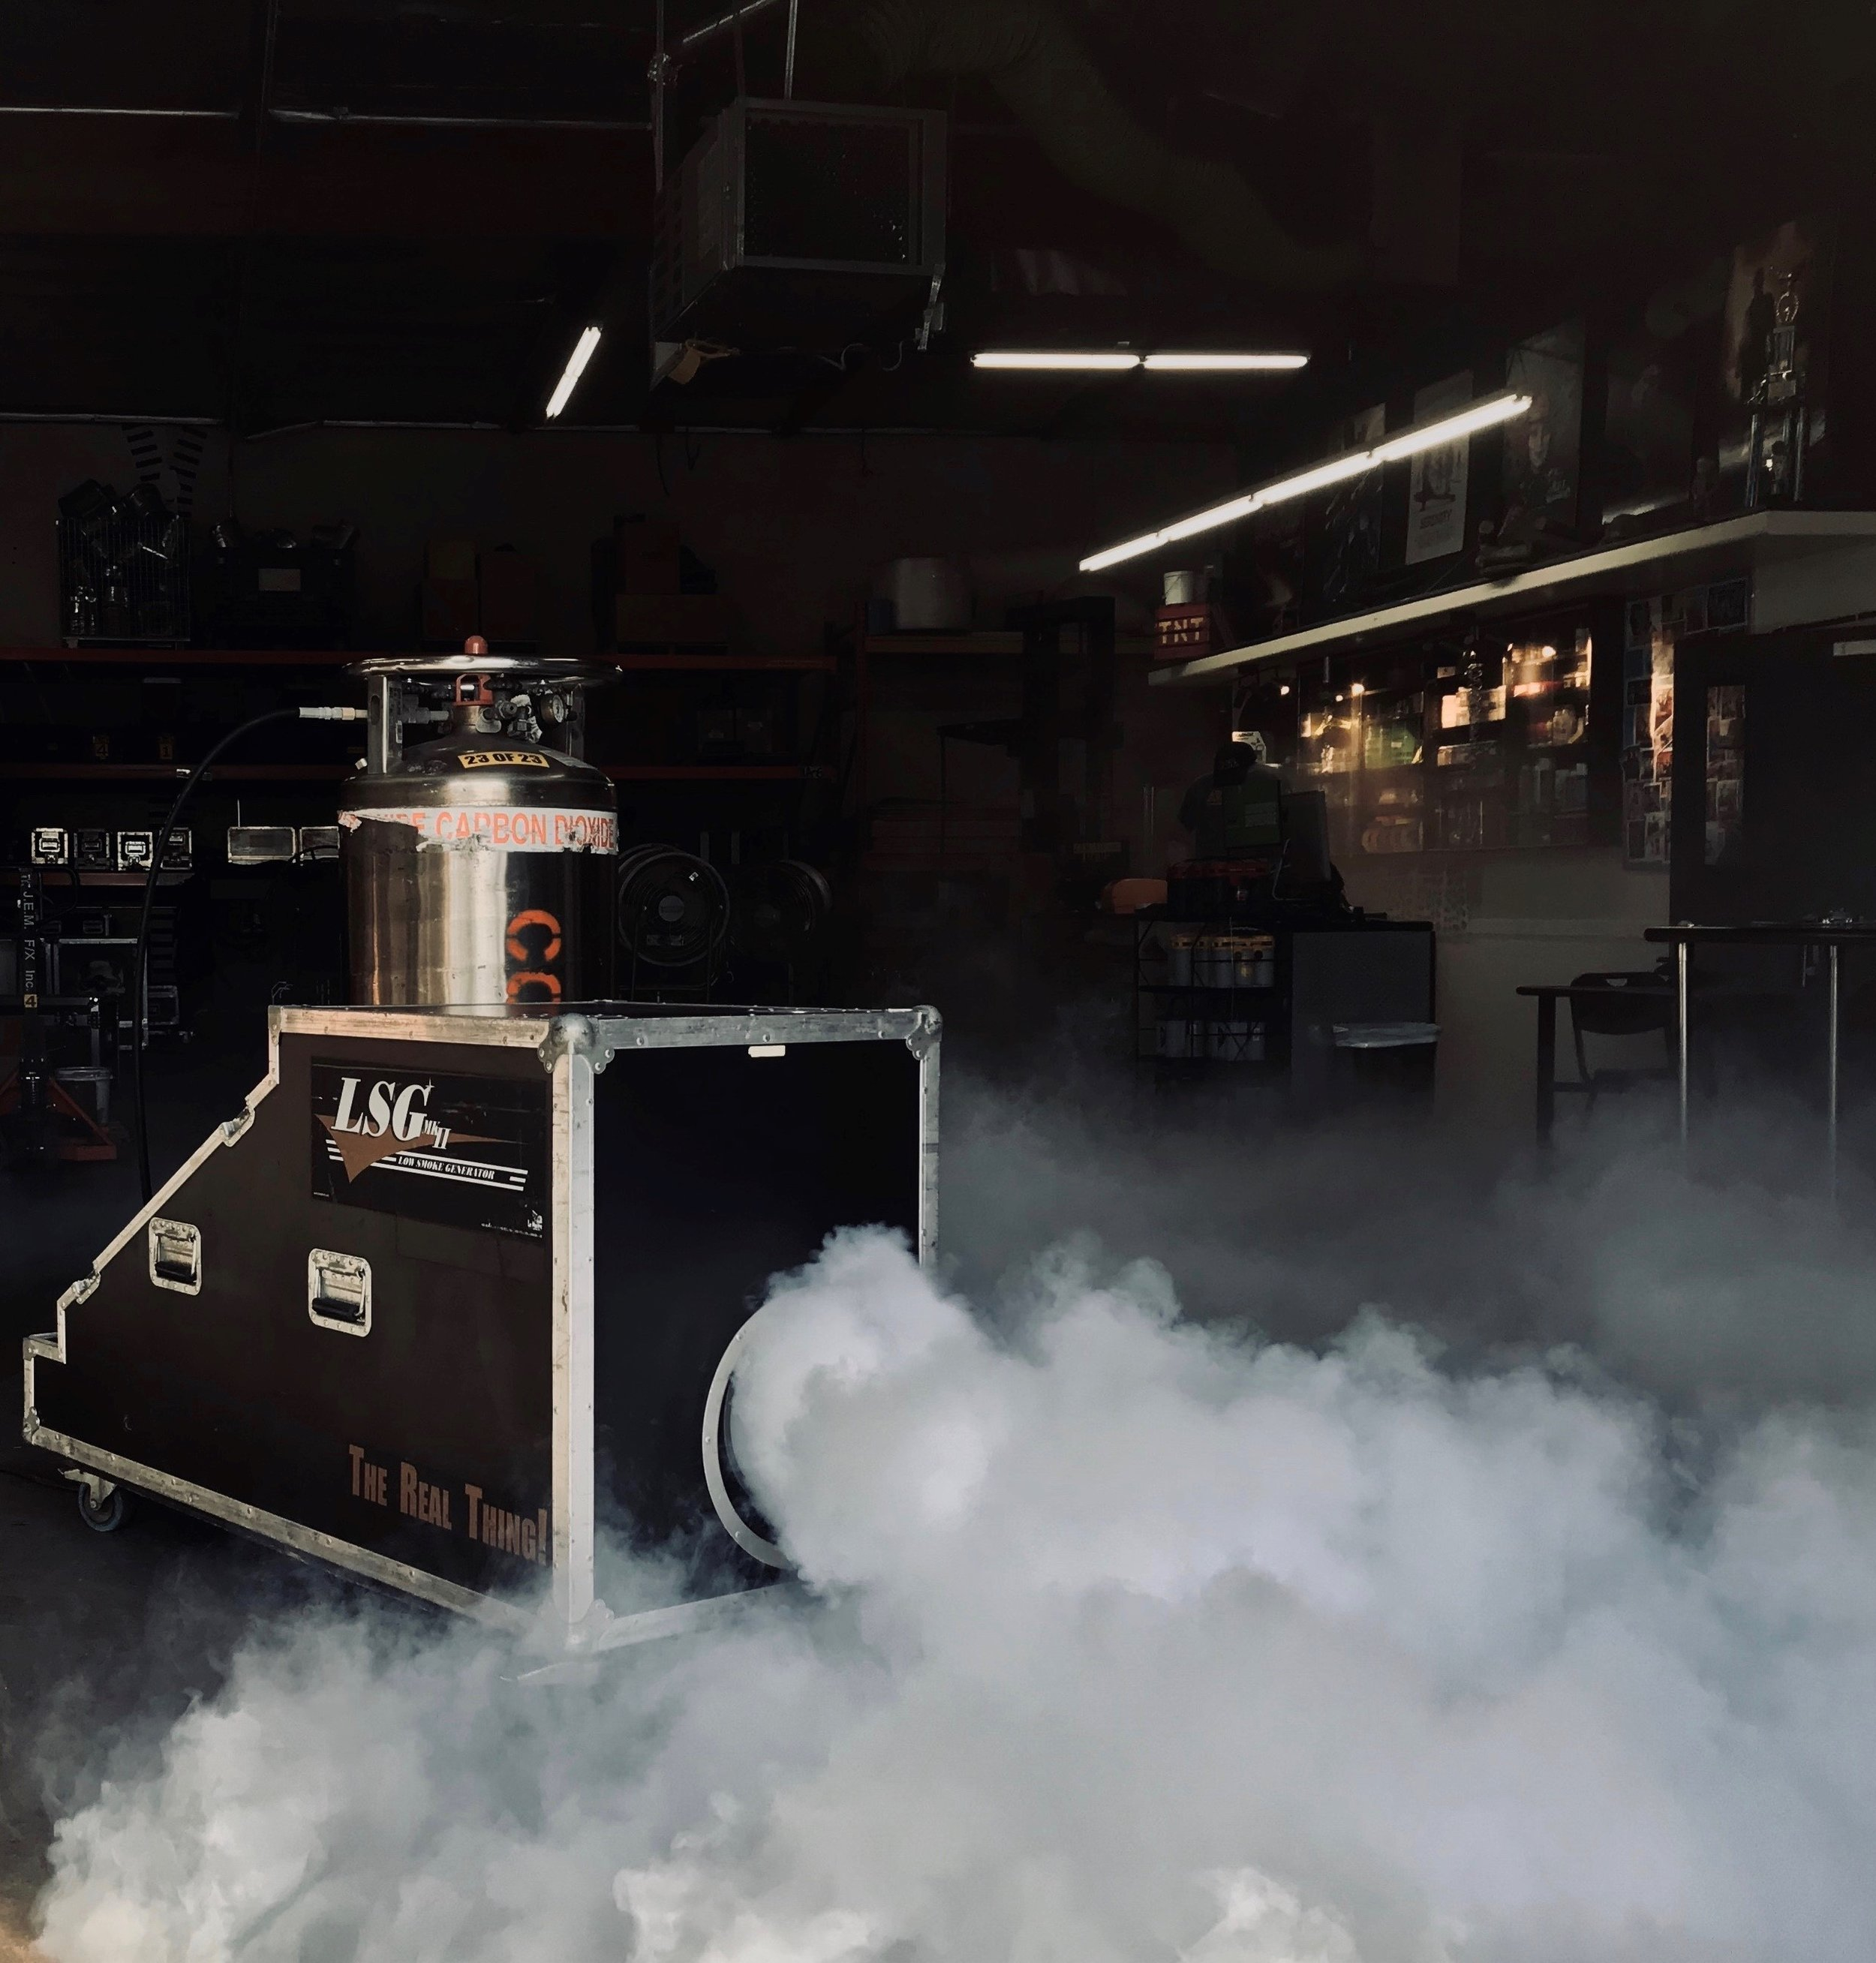 Fog Machines - Need light atmospheric haze or dense, low fog? Call us today to see what we can get you.